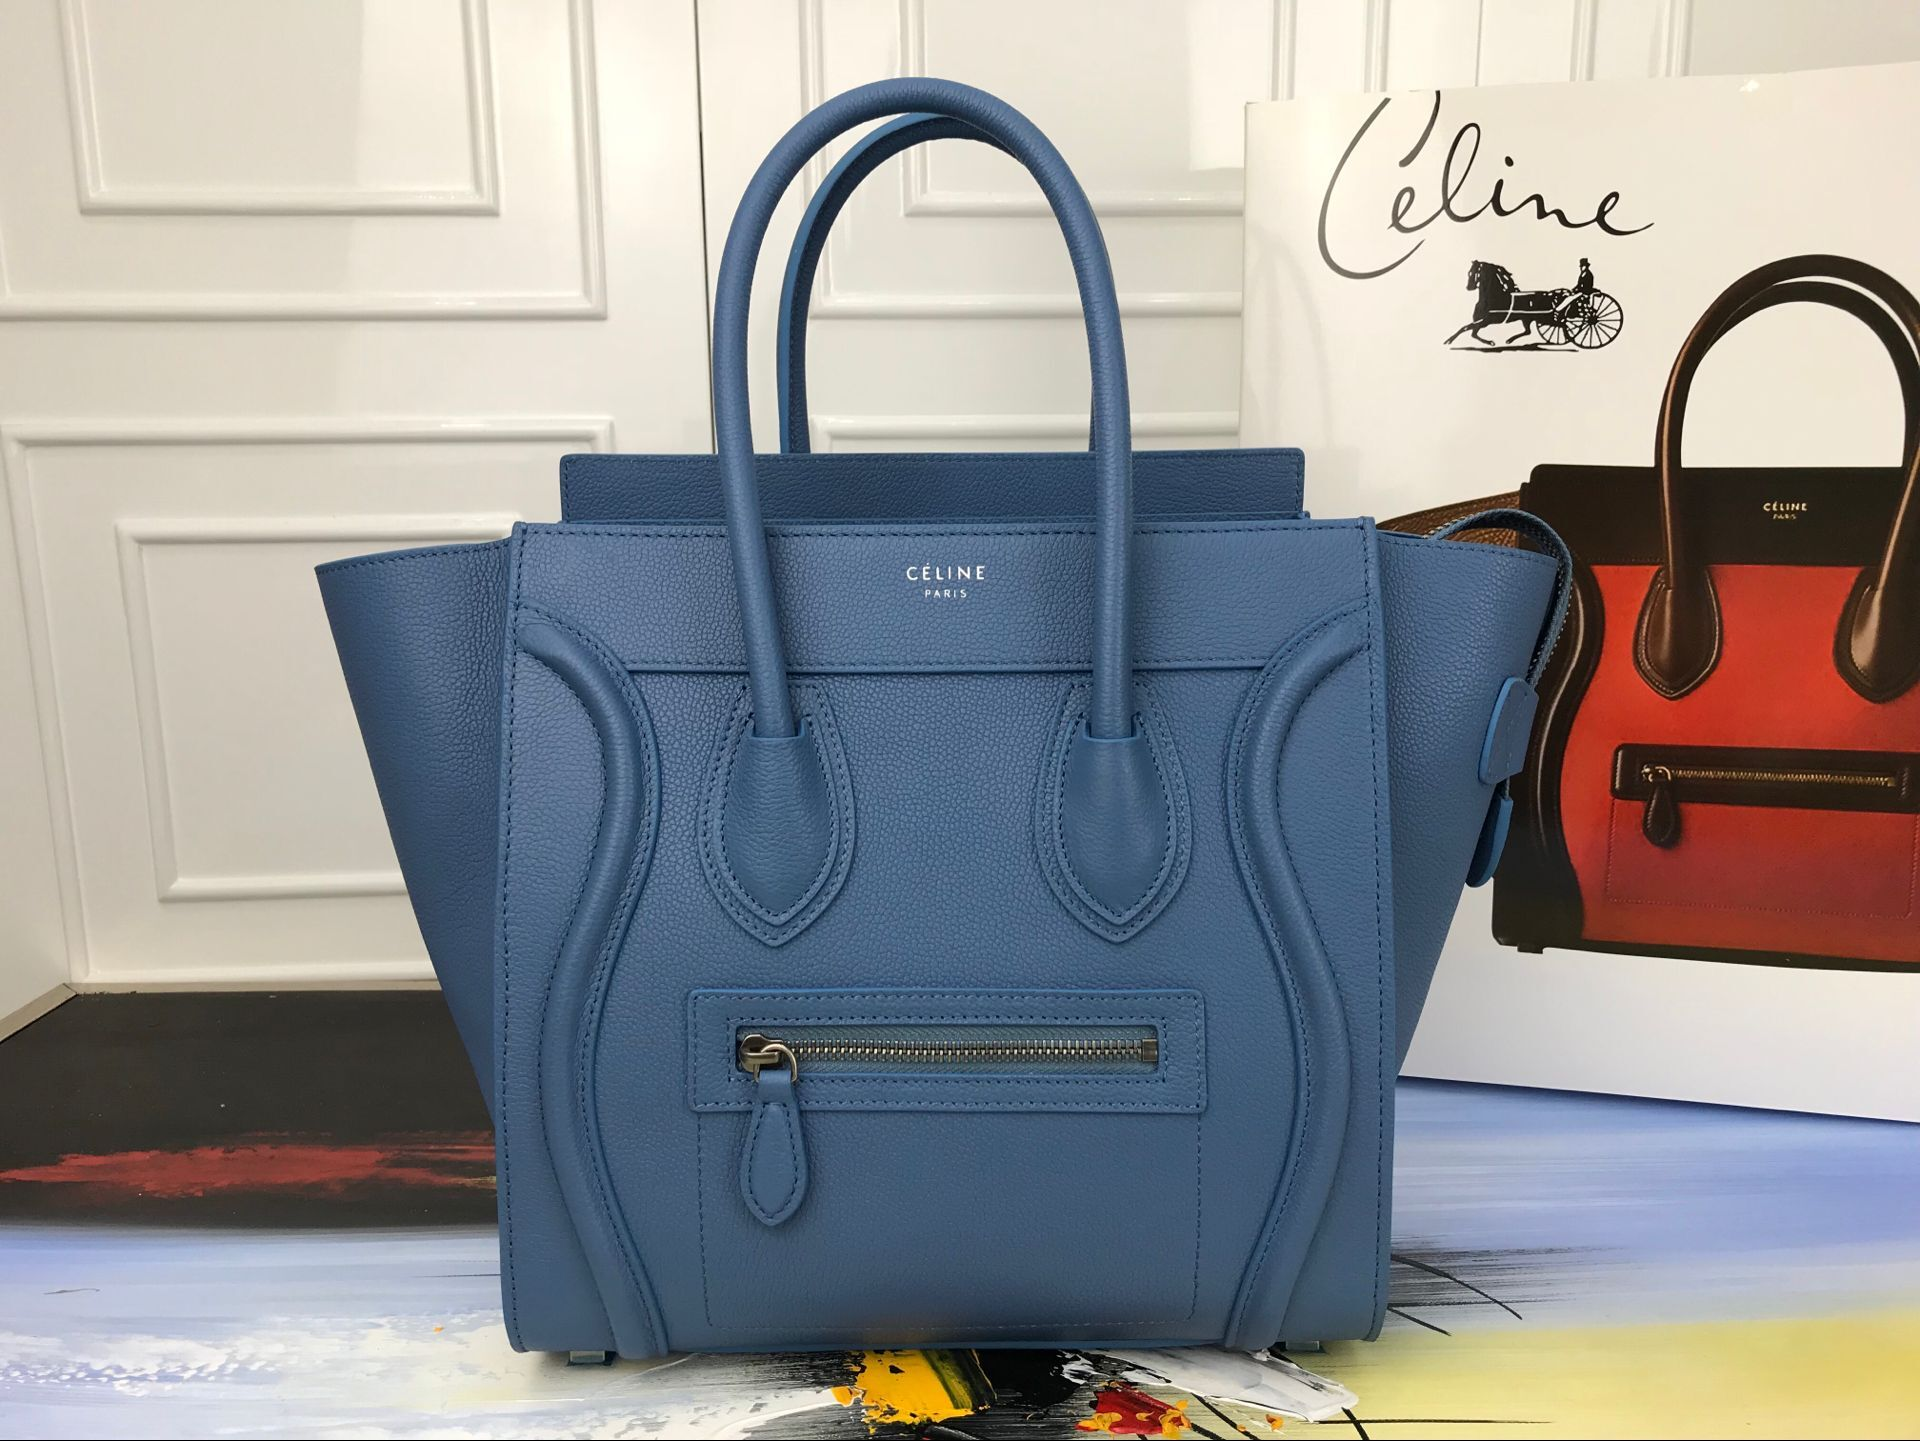 Celine Luggage Micro Tote Bag Original Leather CLY33081M blue